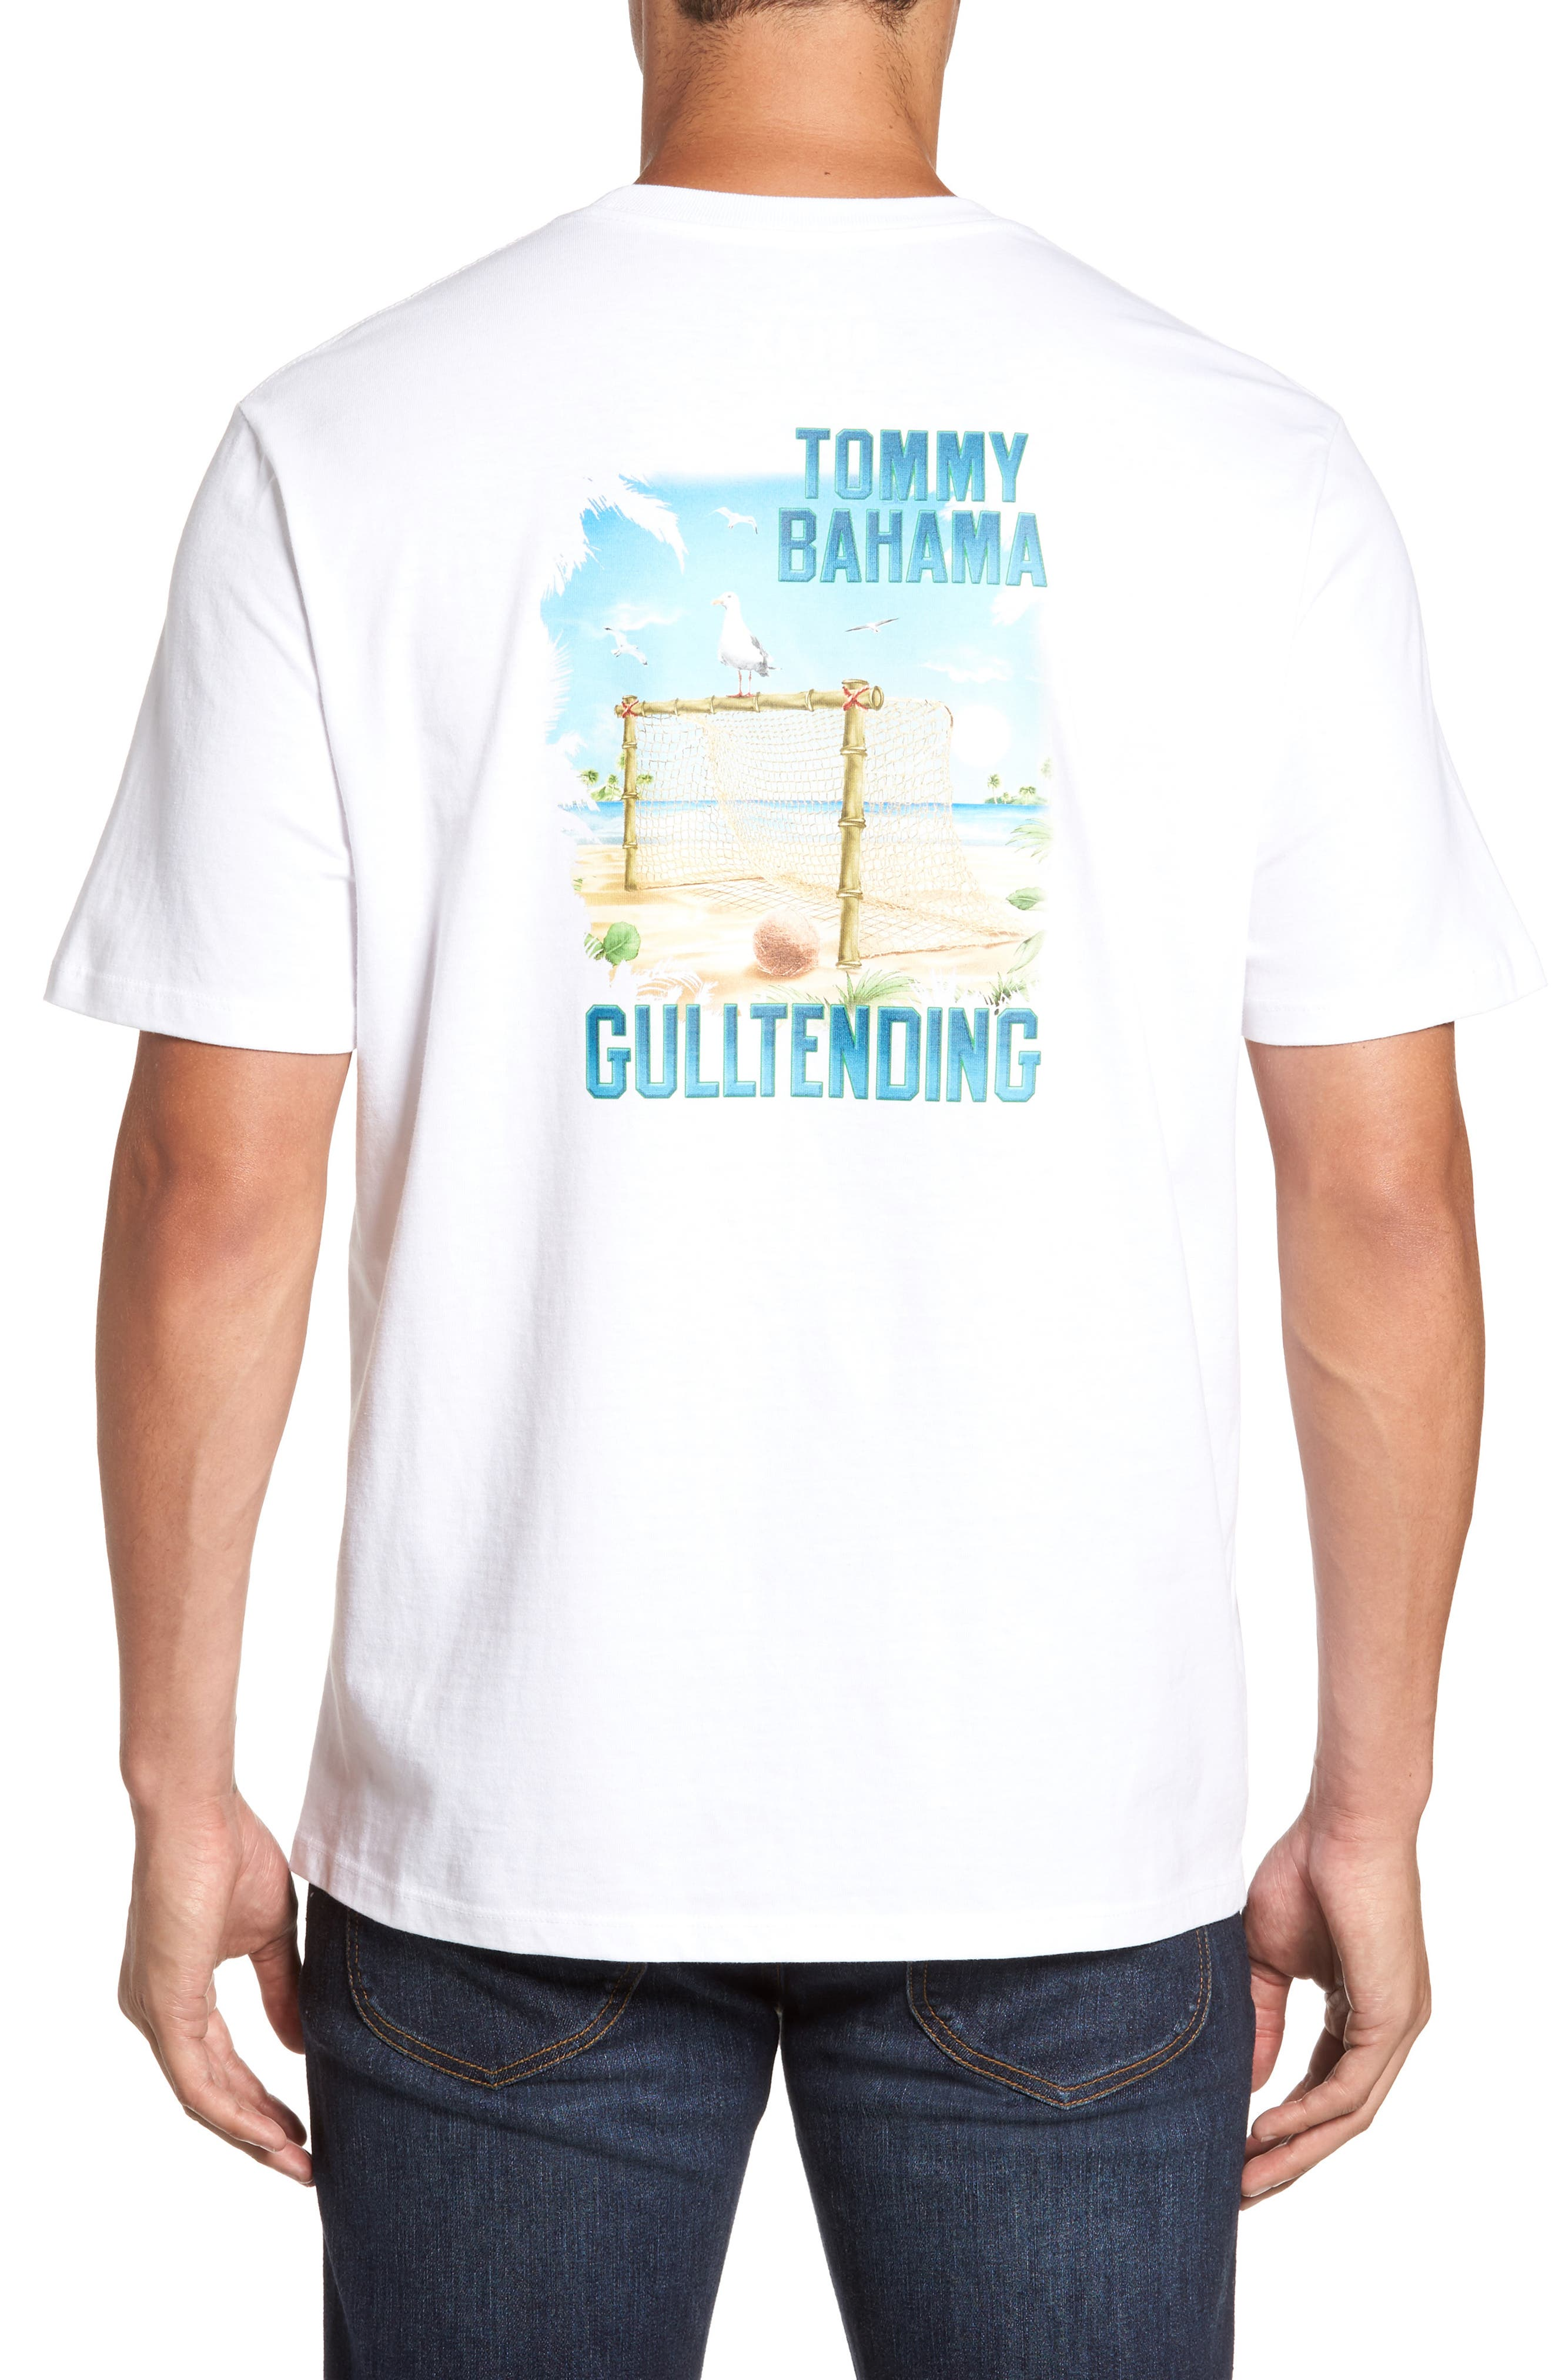 Main Image - Tommy Bahama Gull Tending Standard Fit T-Shirt